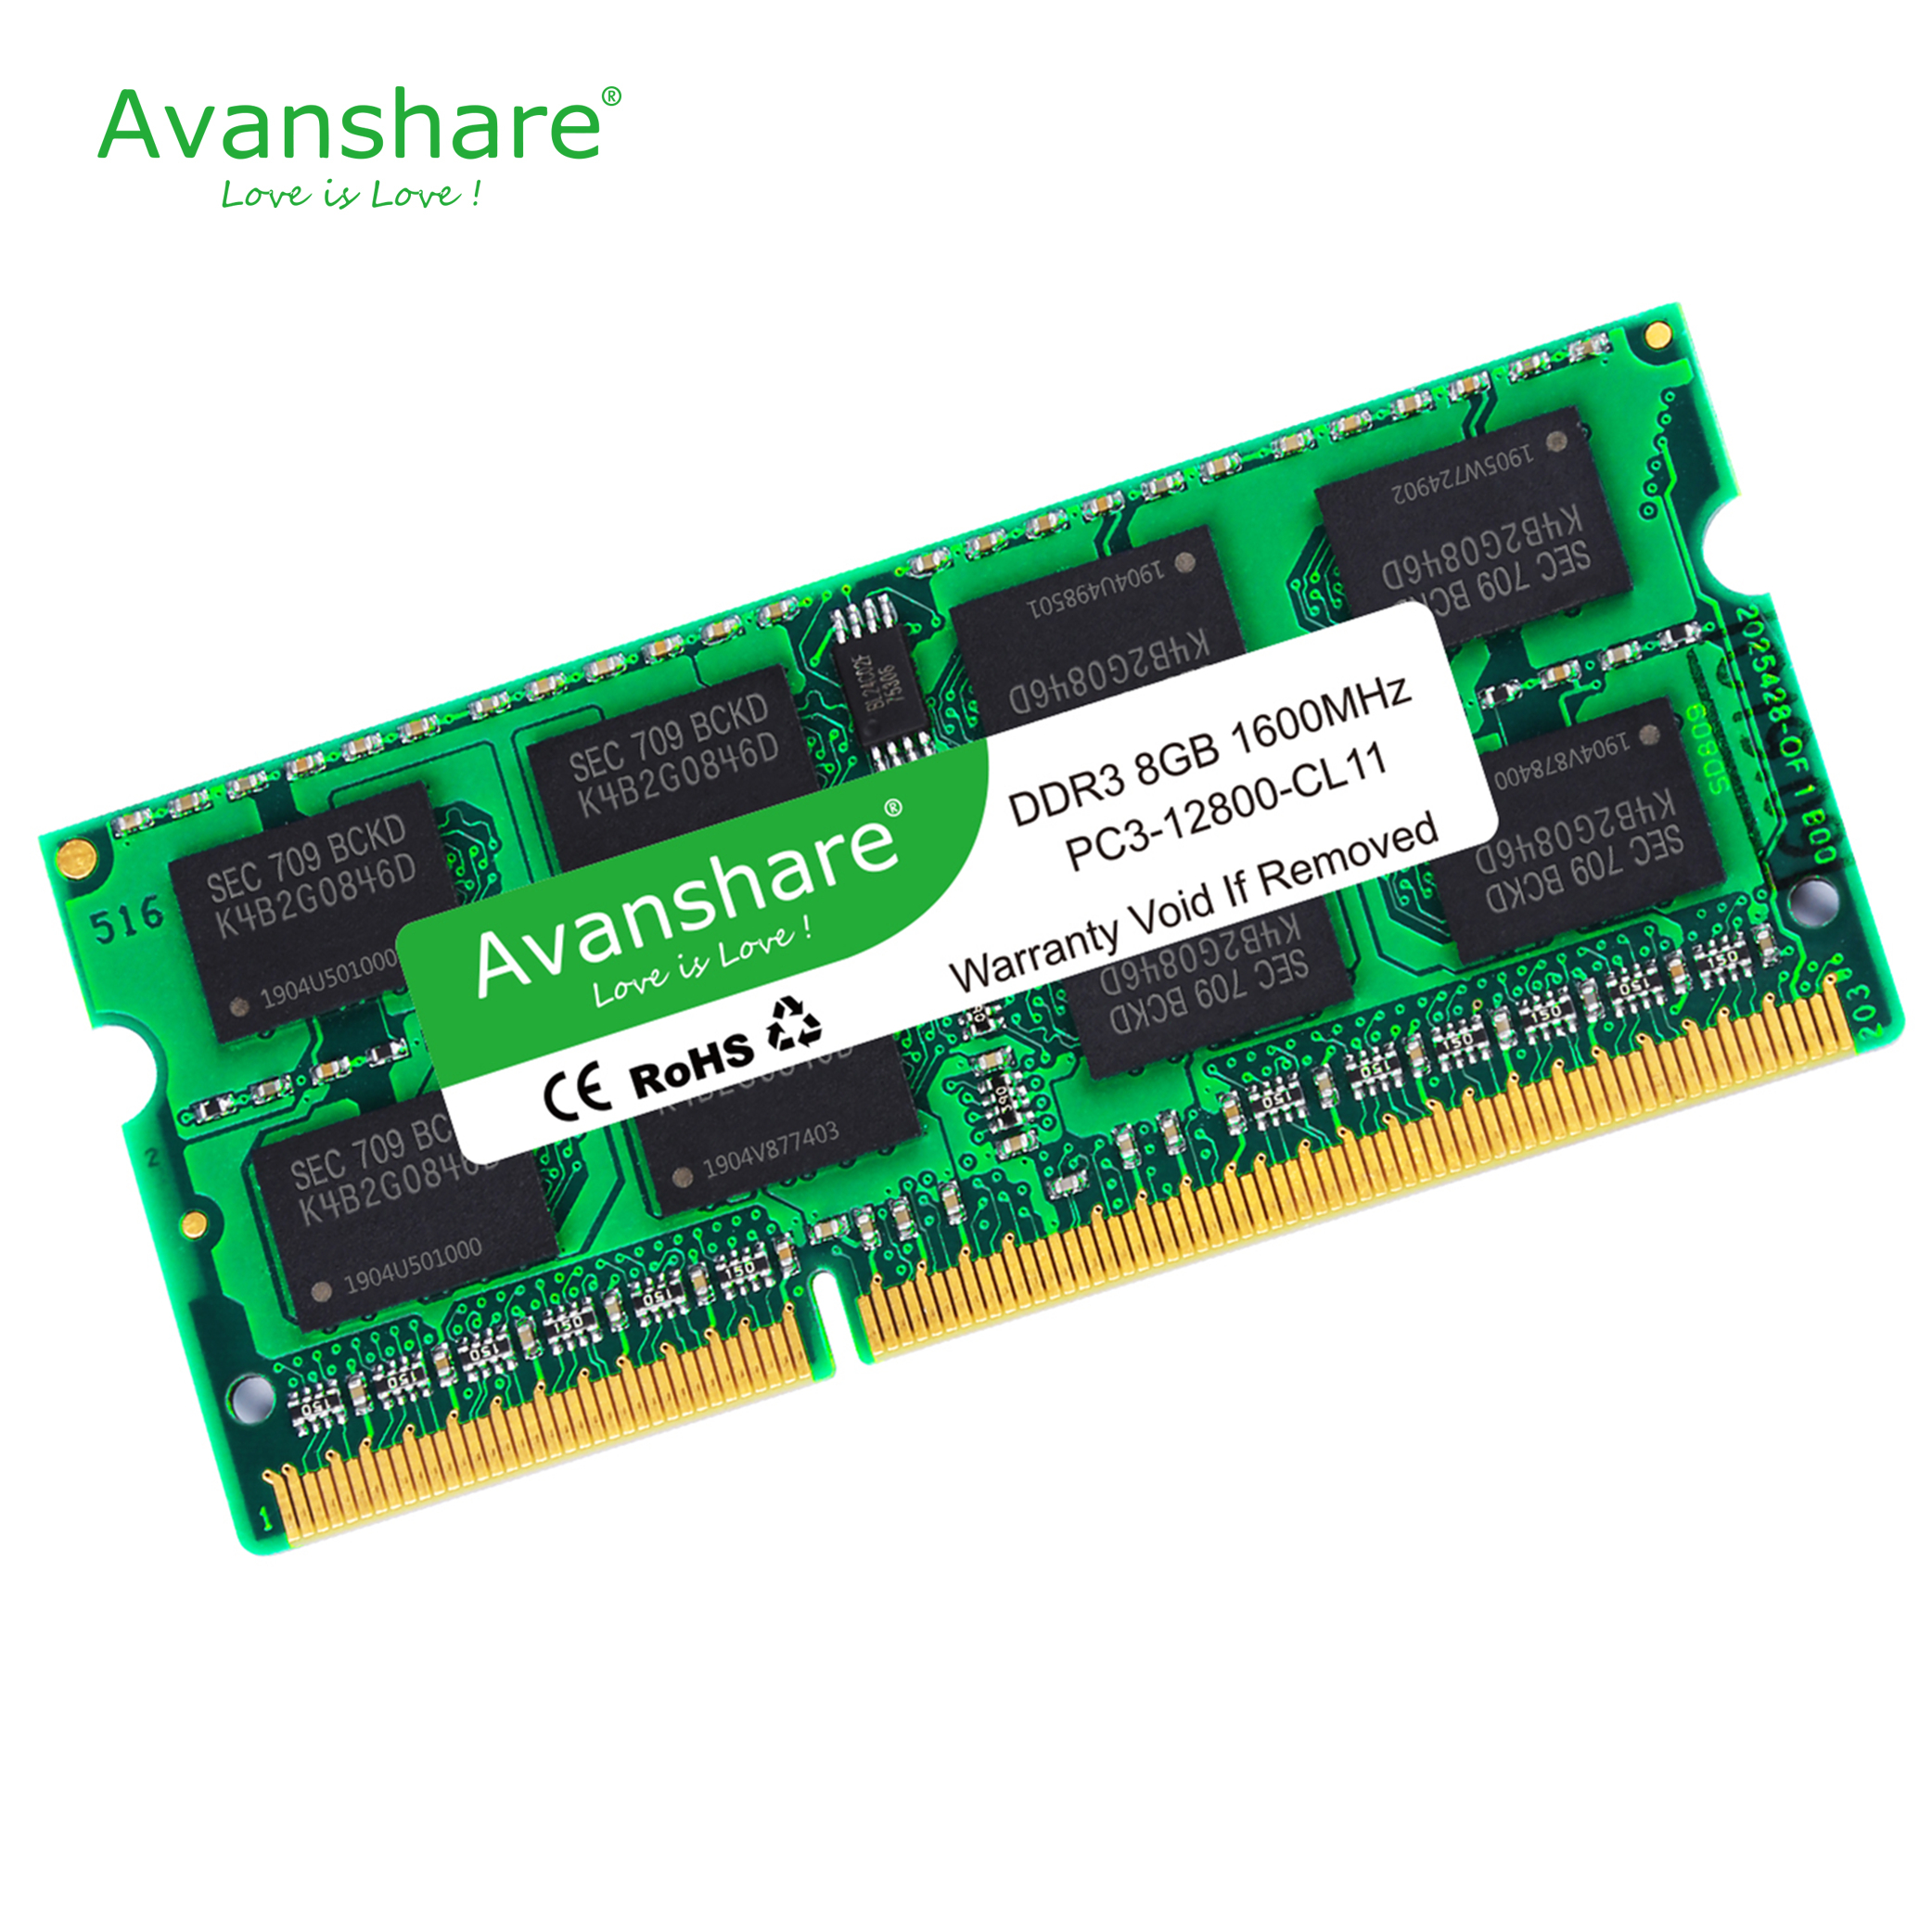 memory <font><b>ddr3</b></font> 8gb for laptop 1600MHz <font><b>sodimm</b></font> macbook ram ddr3l <font><b>1600</b></font> compatible <font><b>ddr3</b></font> laptop <font><b>4gb</b></font> 1333MHz sdram 1066mhz by Avanshare image